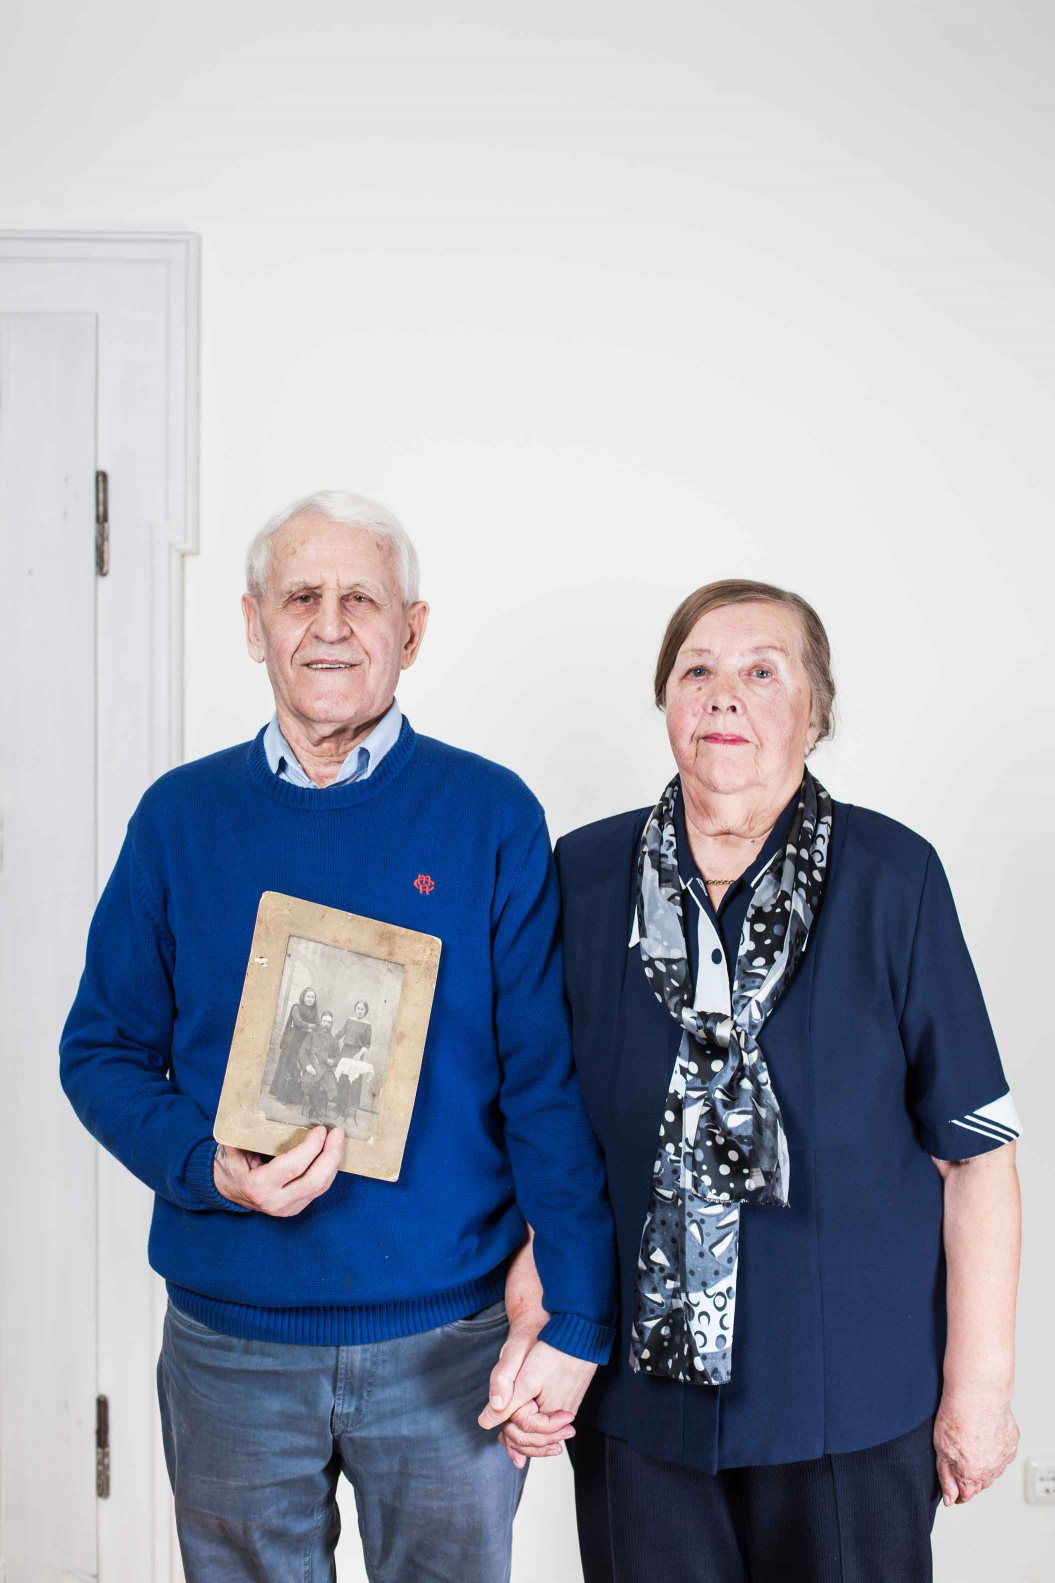 An elderly couple holding an old black and white photograph in their hands